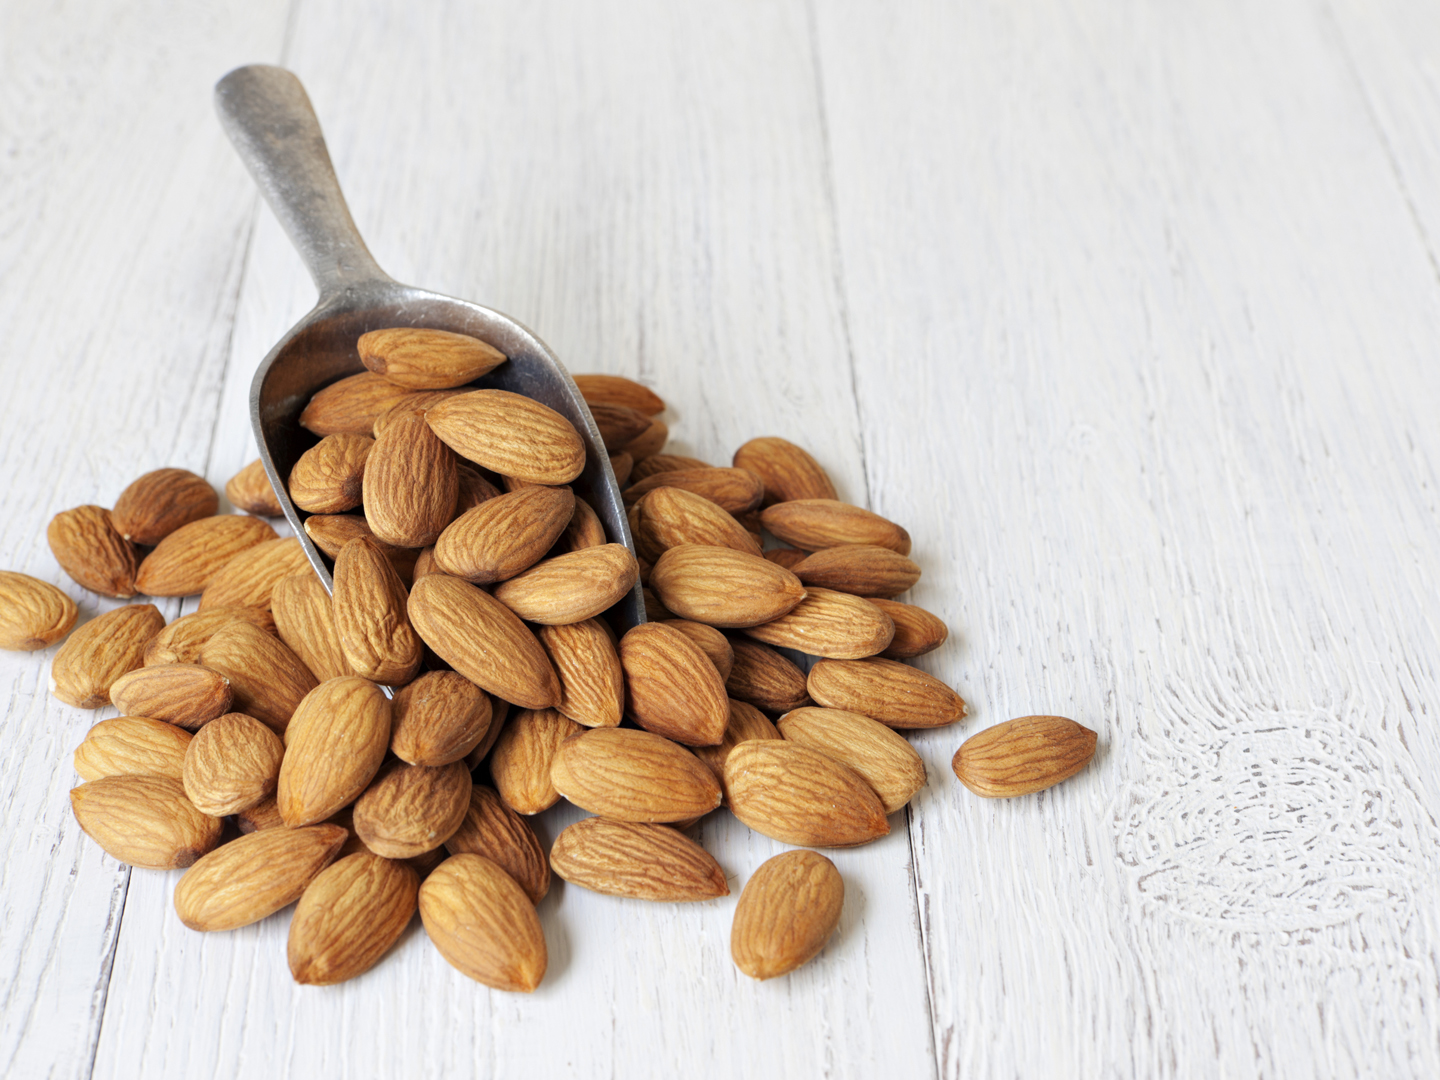 Can Almonds Really Help You Lose Weight? Find Out!